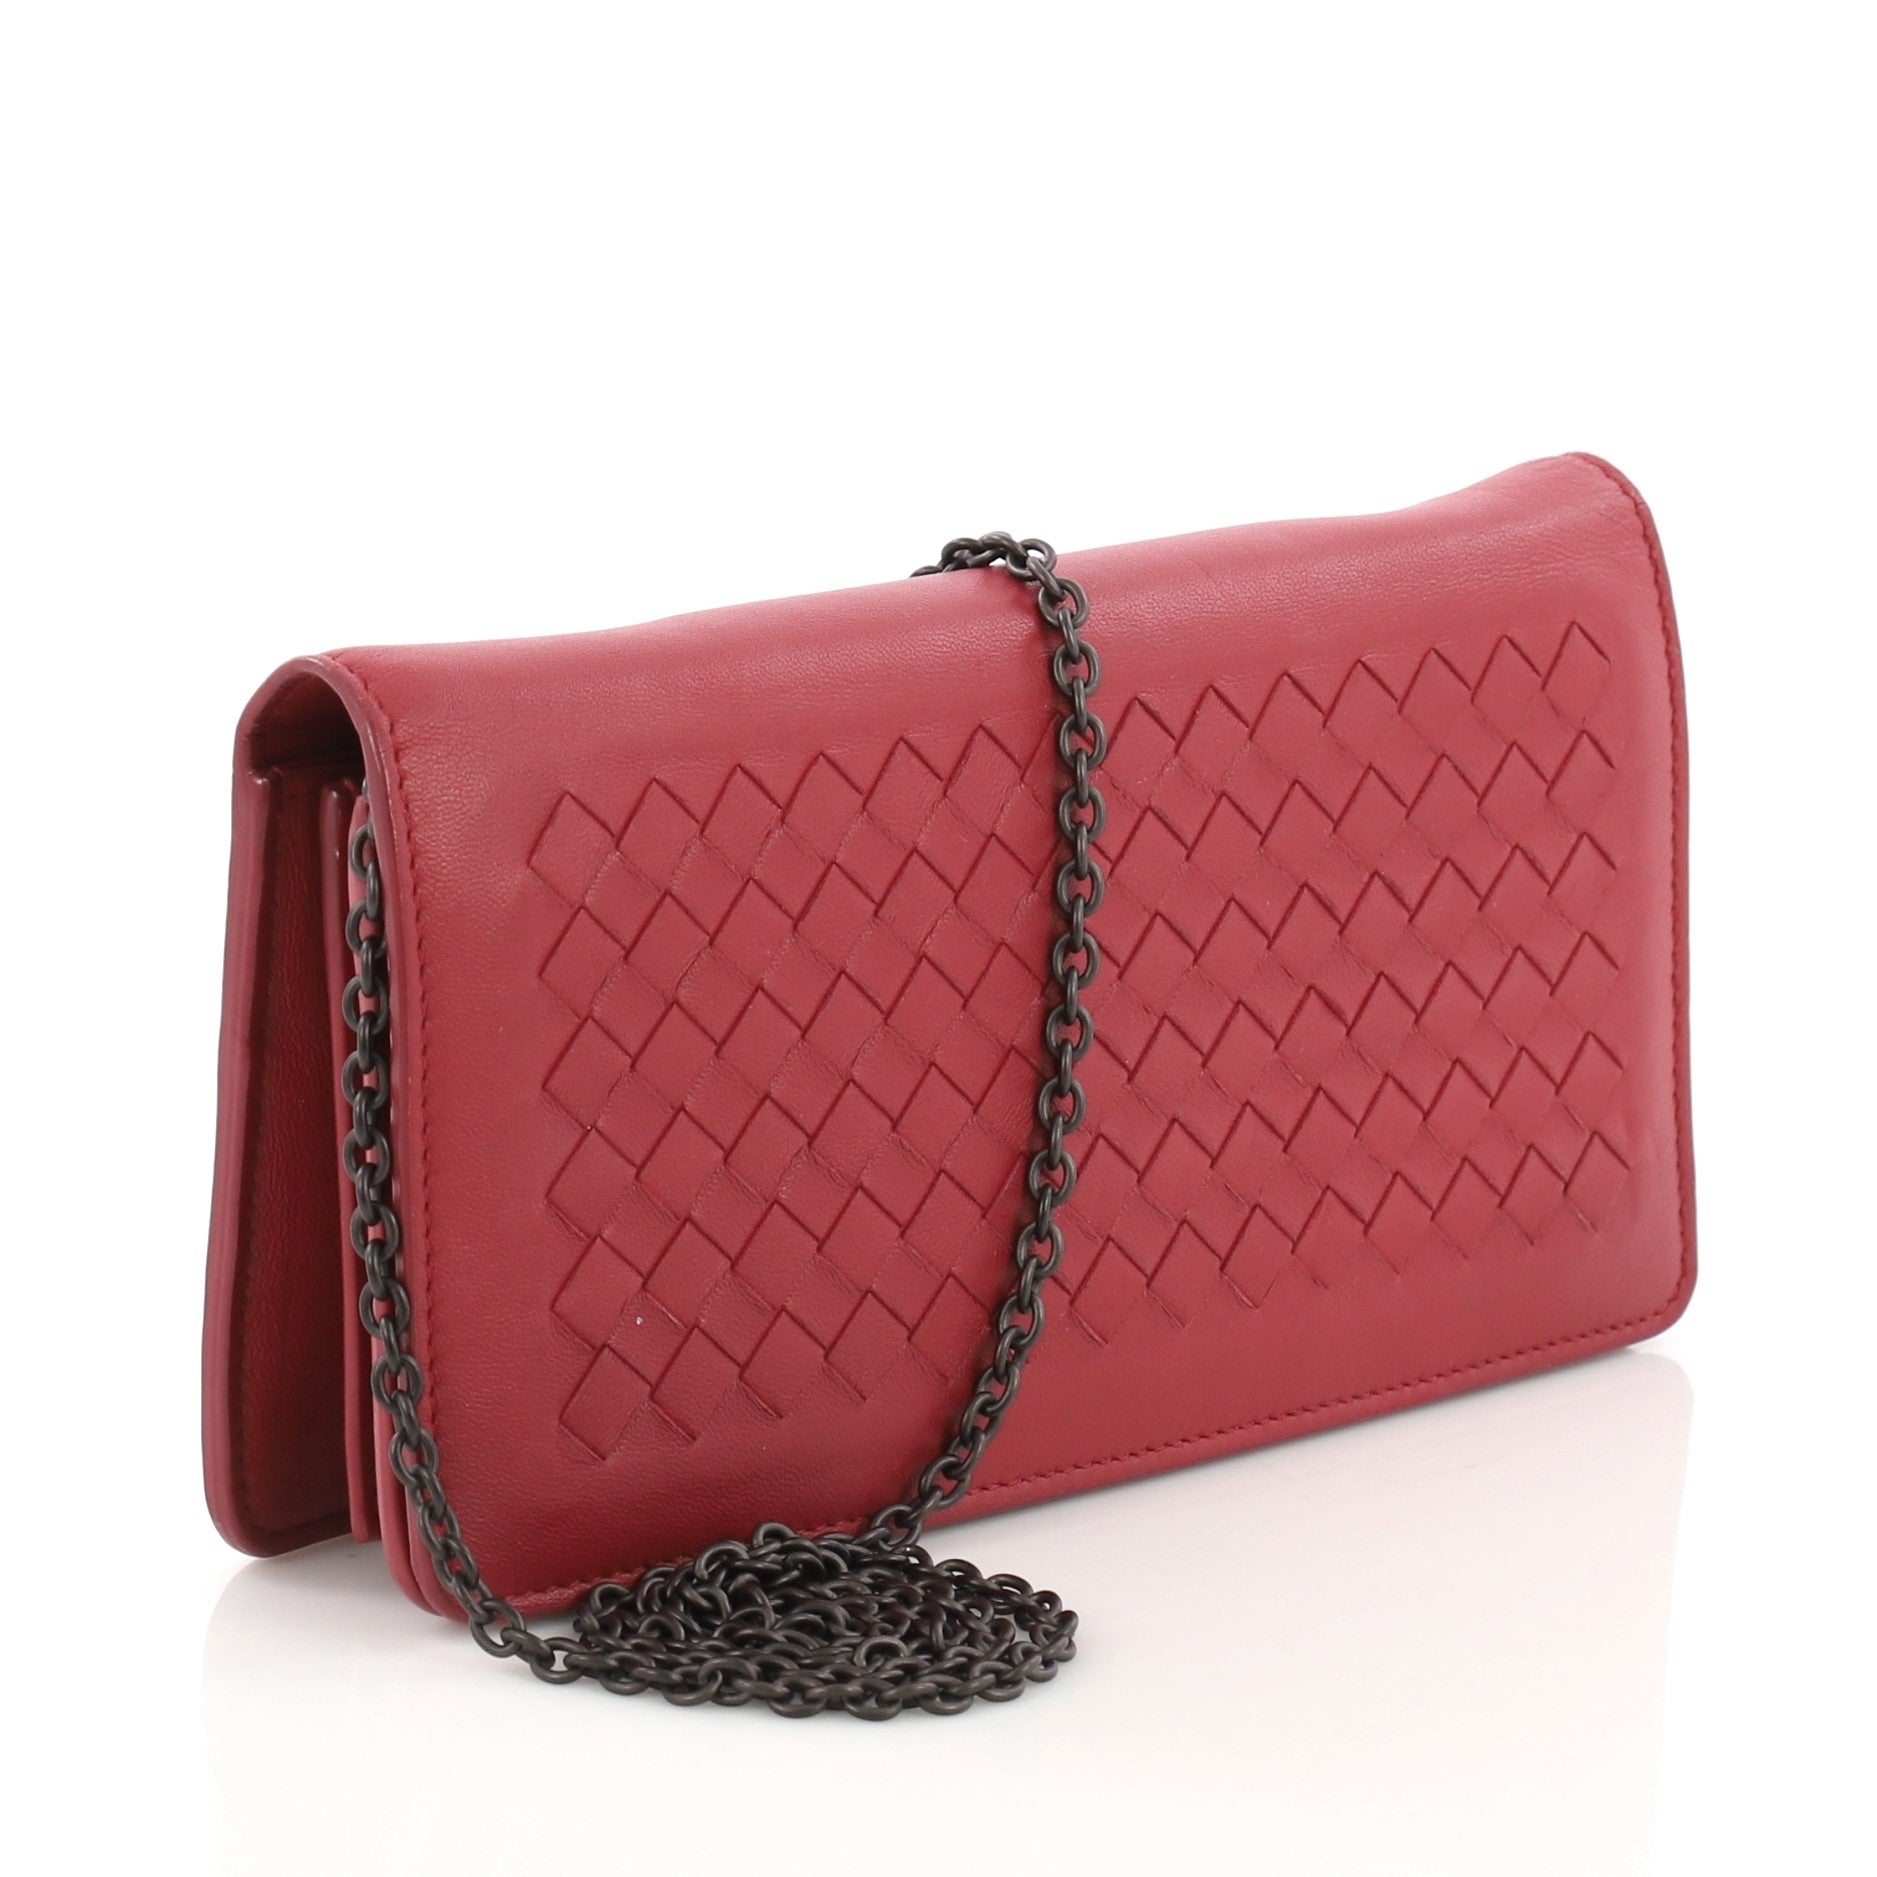 40d6fba07ce83 Bottega Veneta Wallet on Chain Intrecciato Nappa For Sale at 1stdibs